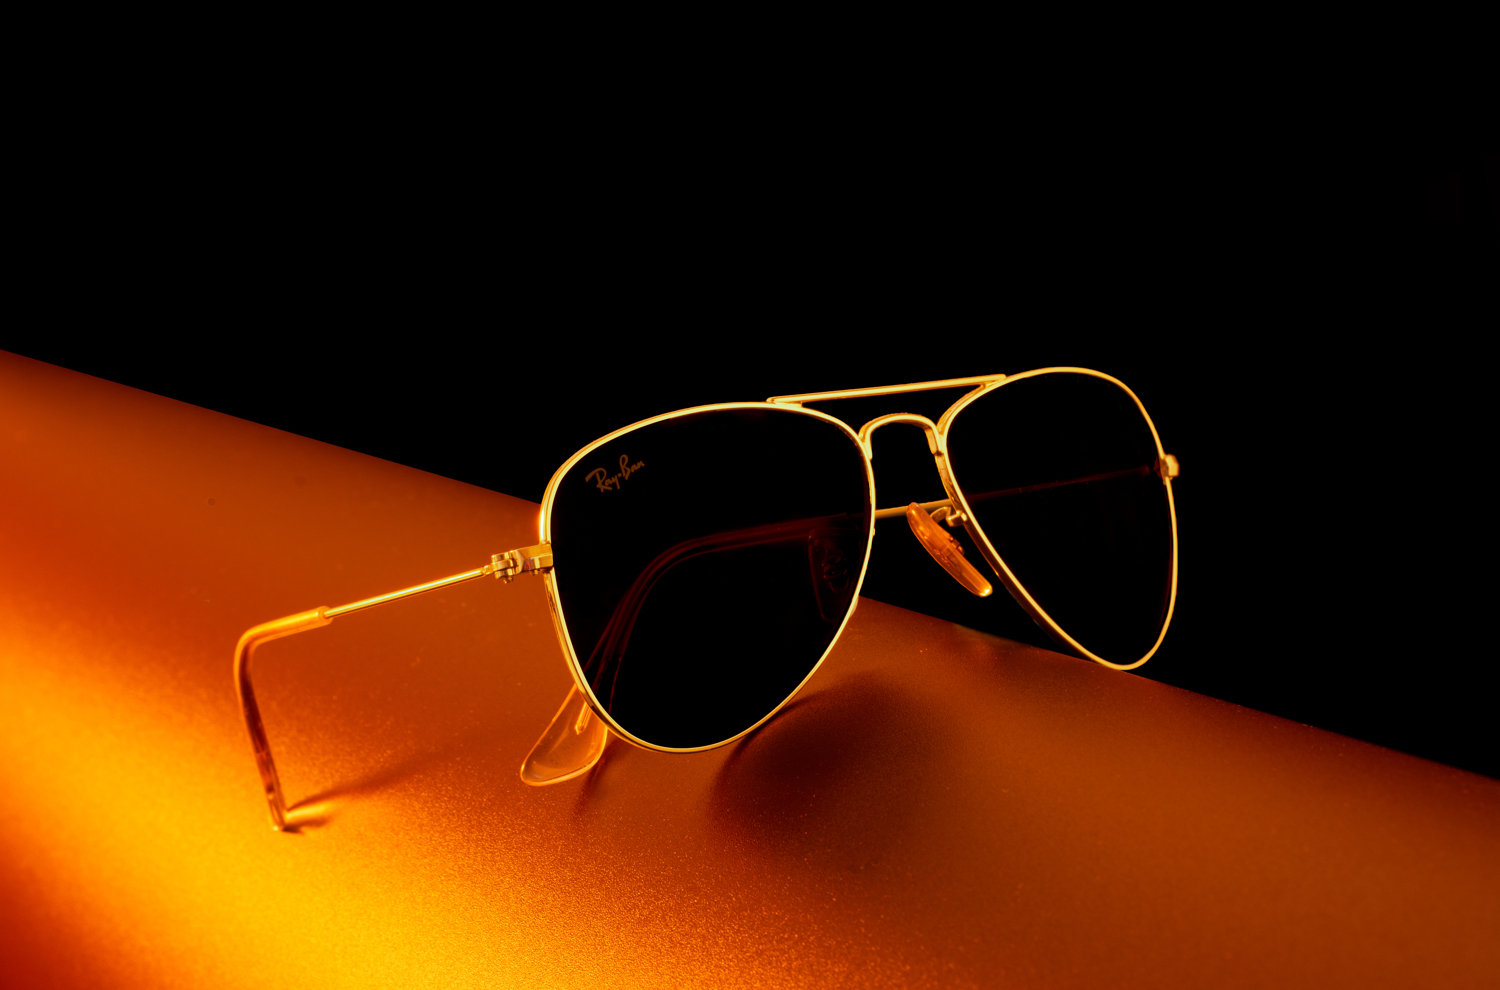 Ray-Ban zonnebril close-up